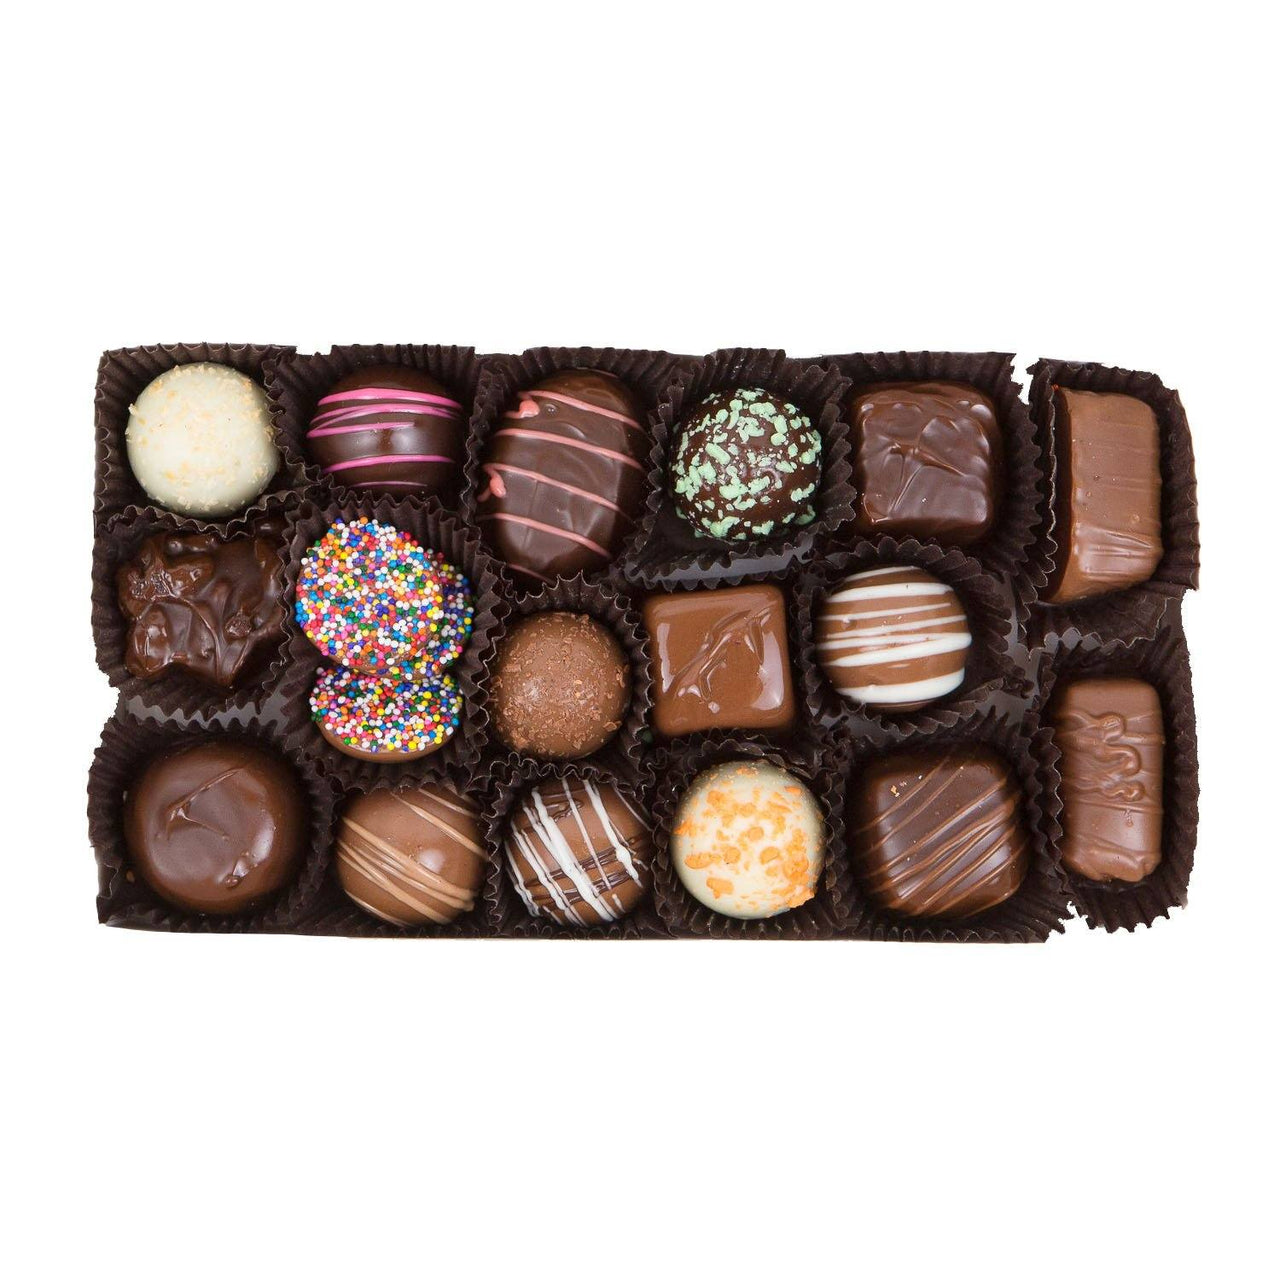 Family Gift Ideas - Assorted Chocolate Gift Box - Jackie's Chocolate (1487138684963)